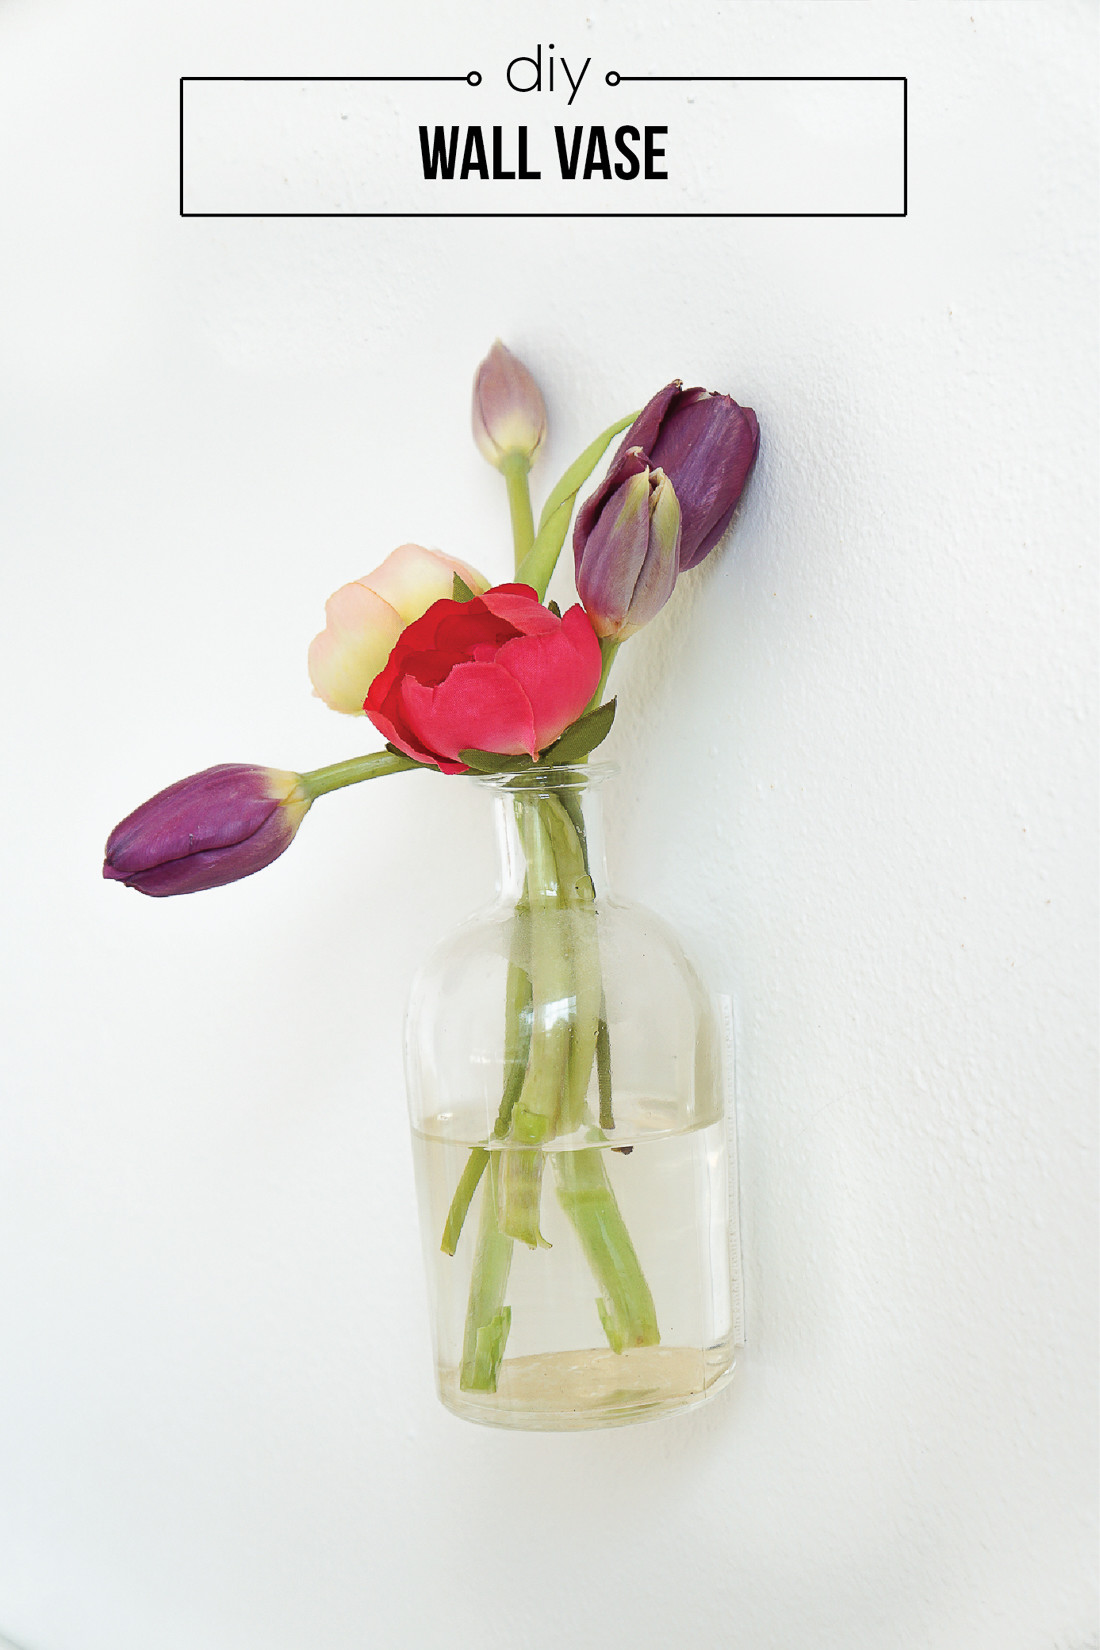 hanging wall vase of glass wall vases for flowers zef jam in diy wall vase francois et moi